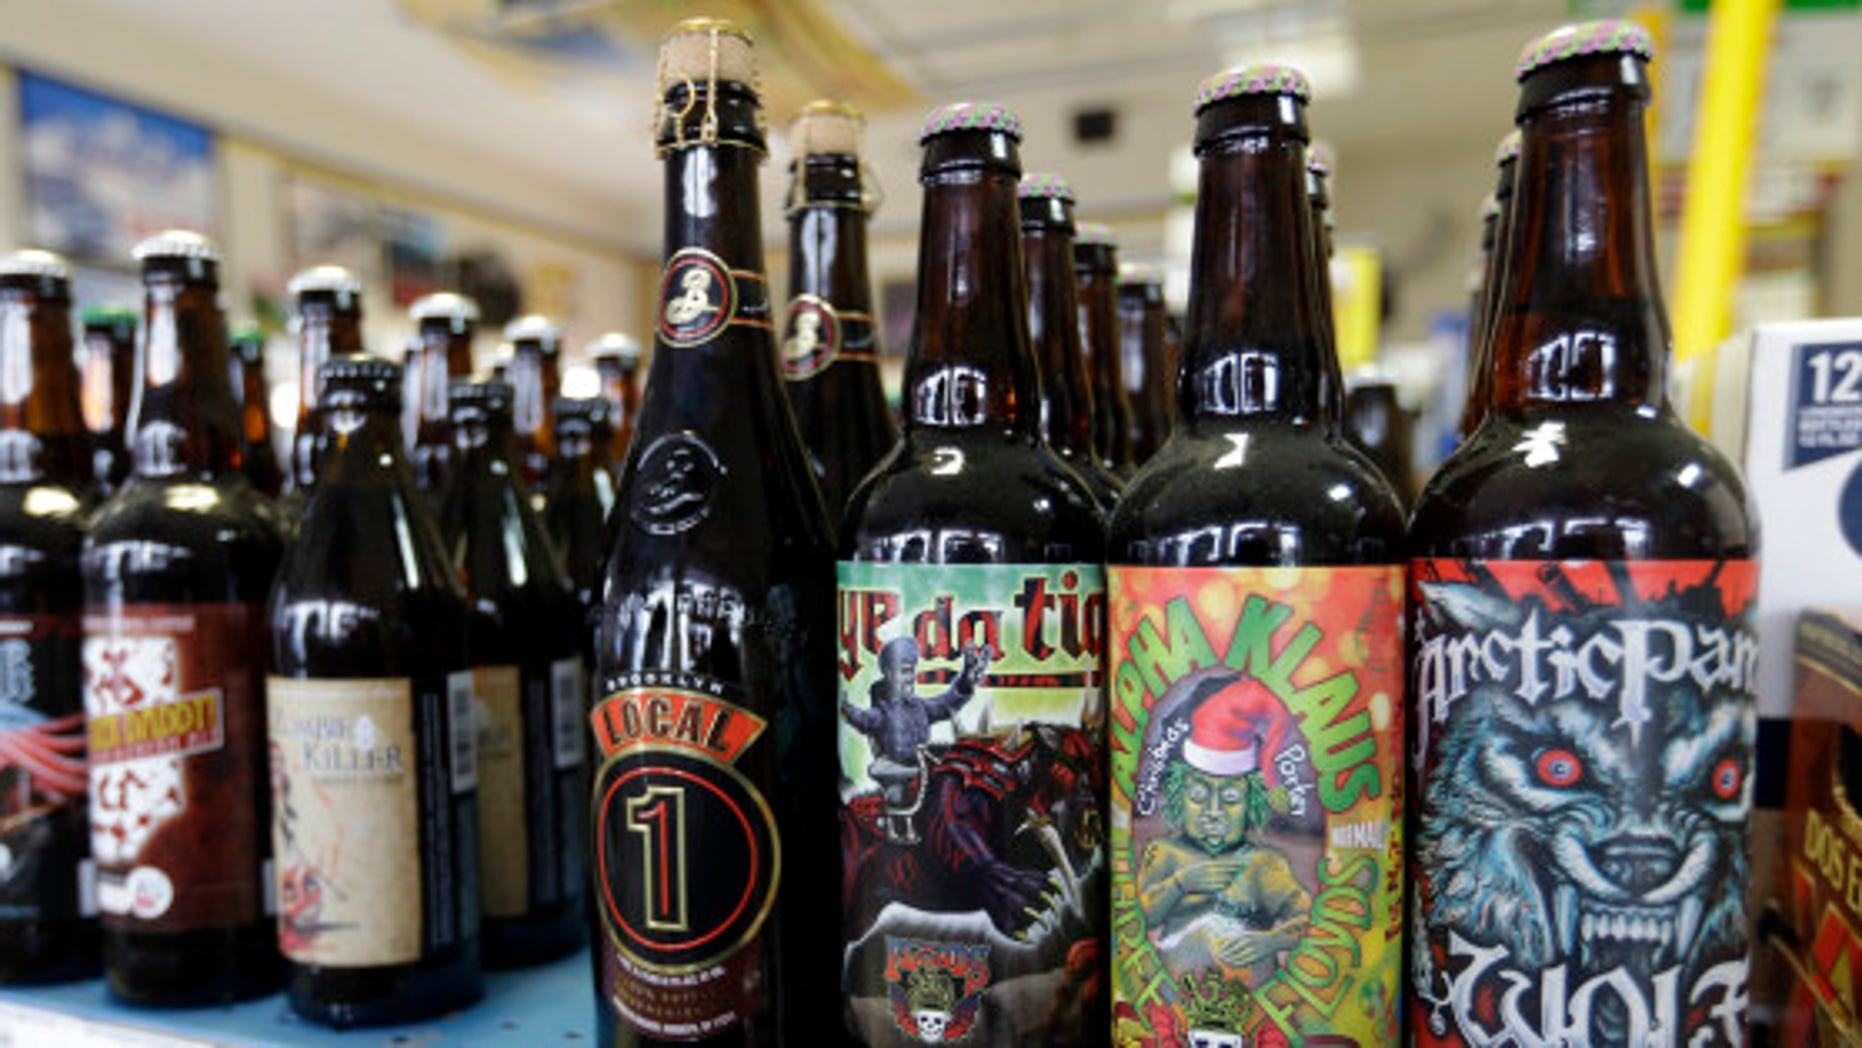 A selection of craft beers dot the shelves of Elite Beverages in Indianapolis, Ind. Craft beers now account for approximately 20 percent of the domestic beer market share.